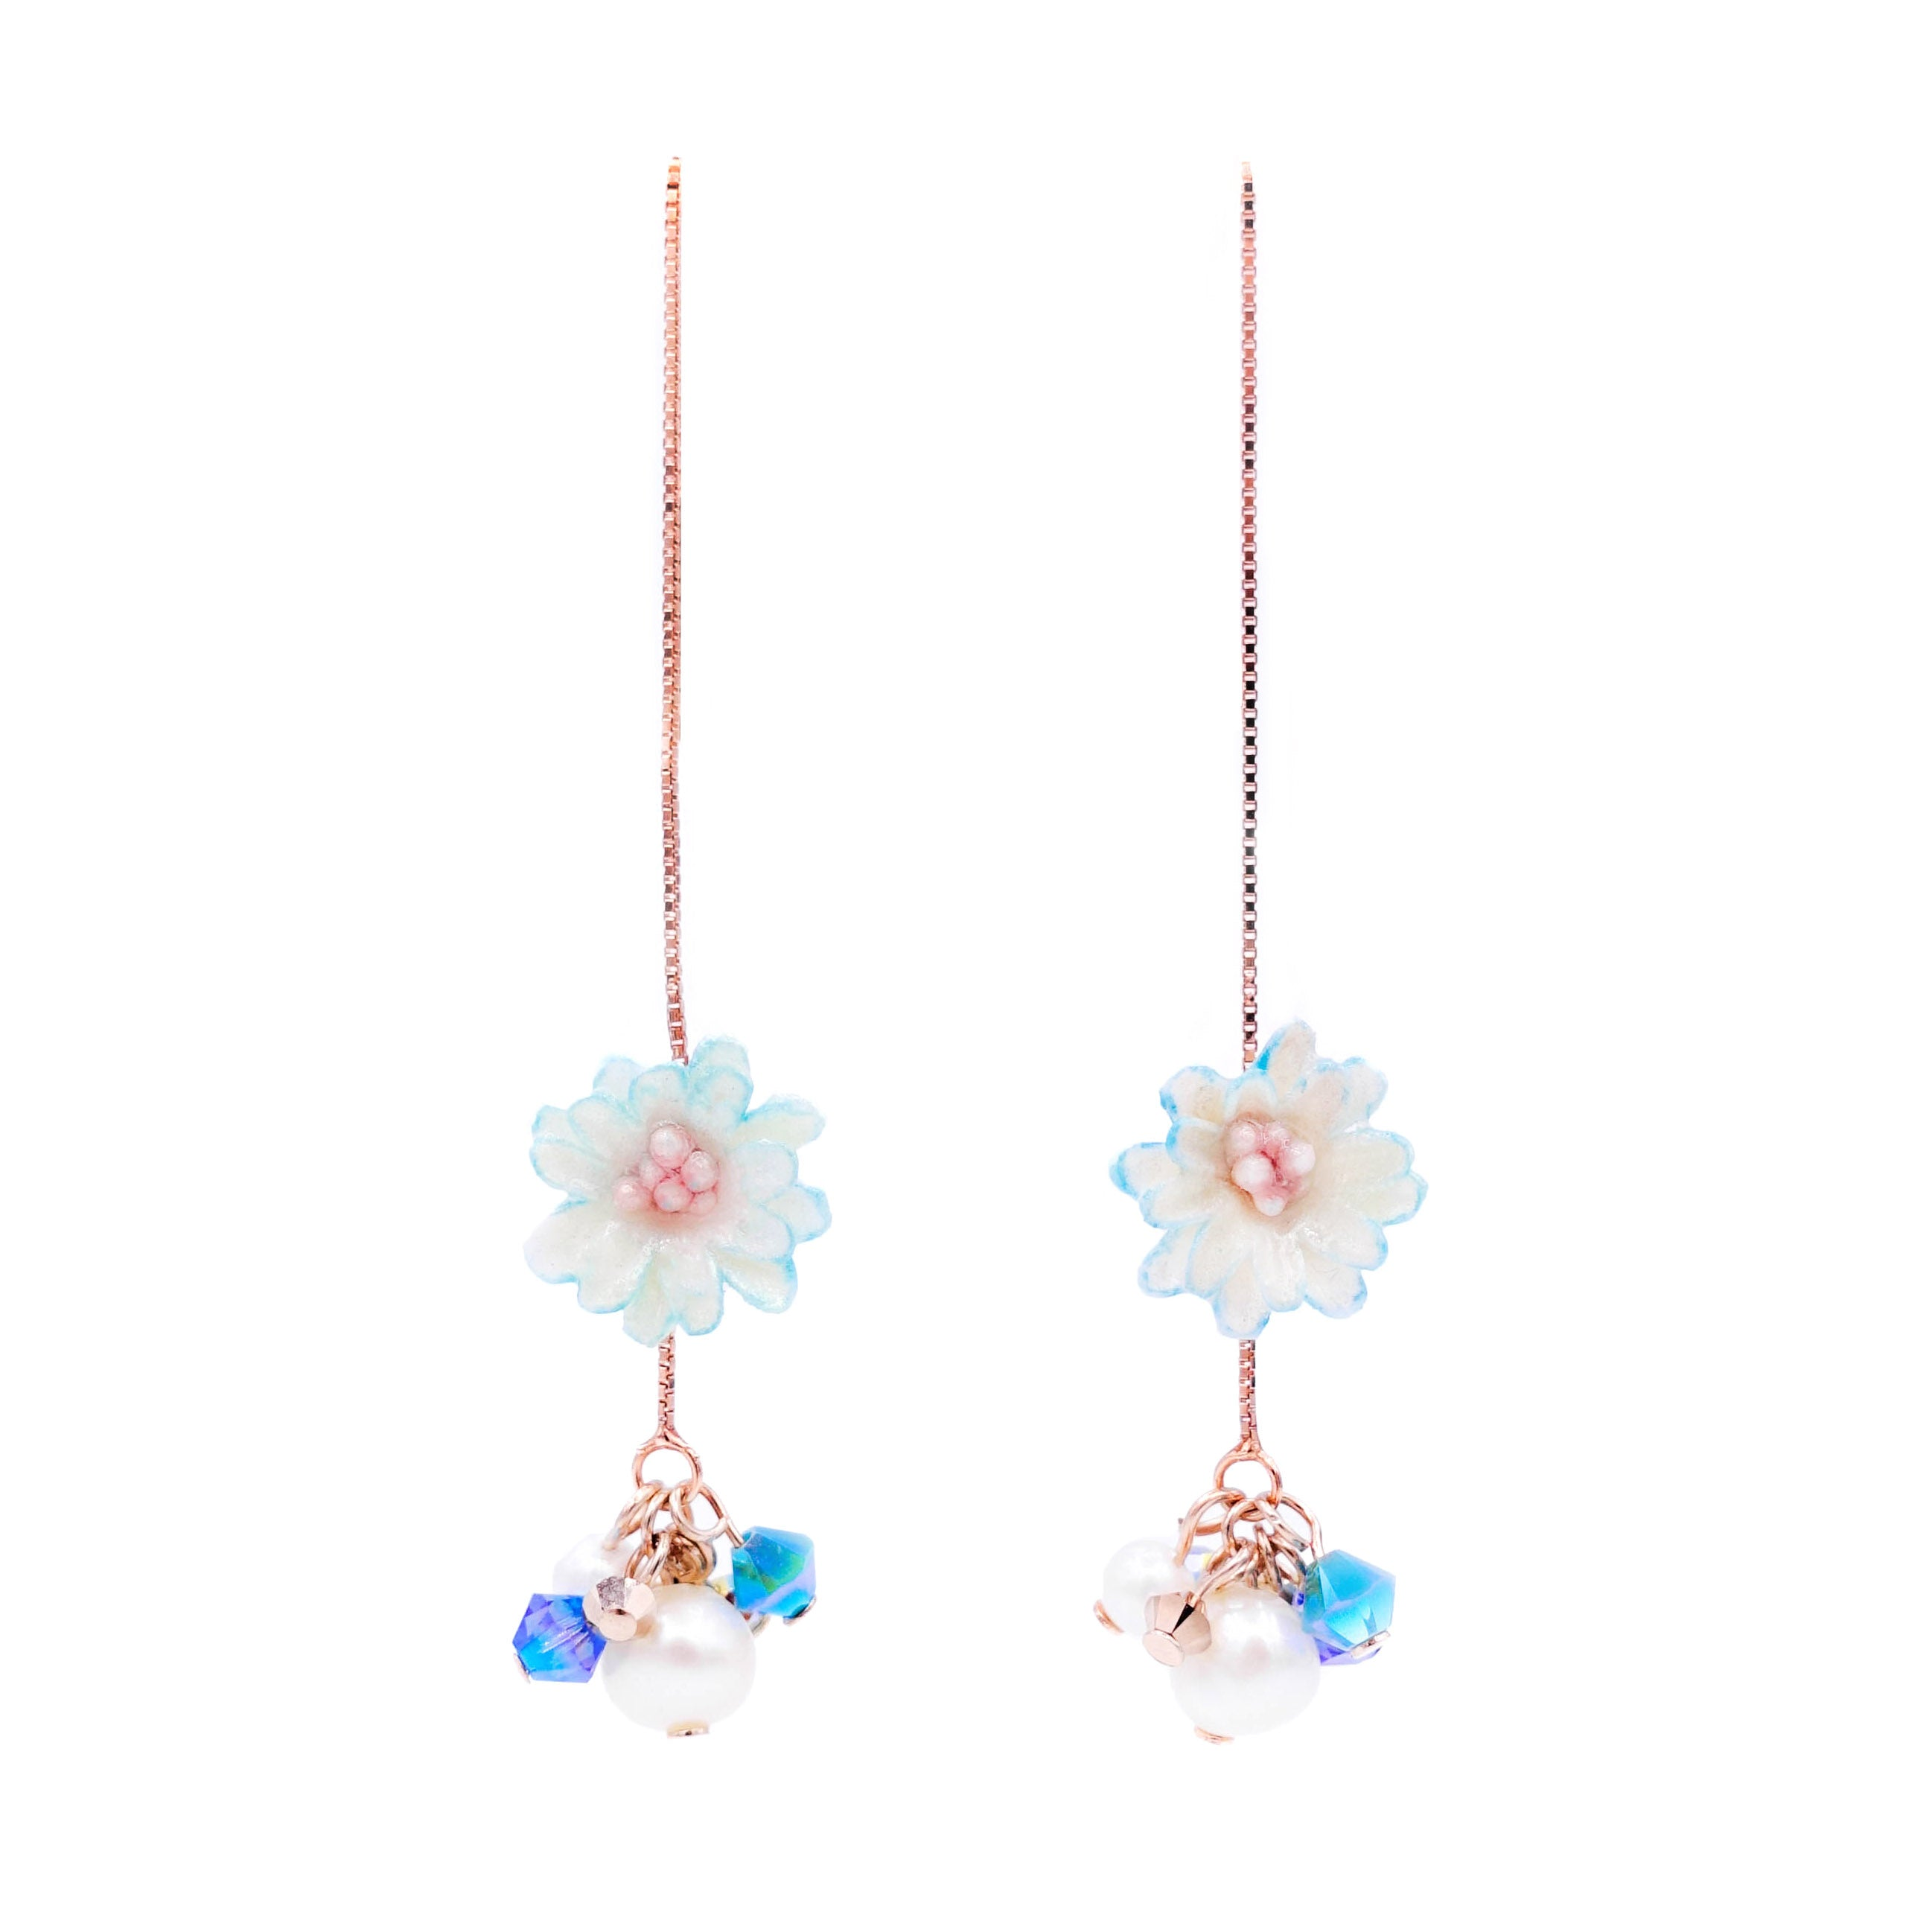 ZINNIA Aqua Rosegold-plated 925 Silver Ear Chains